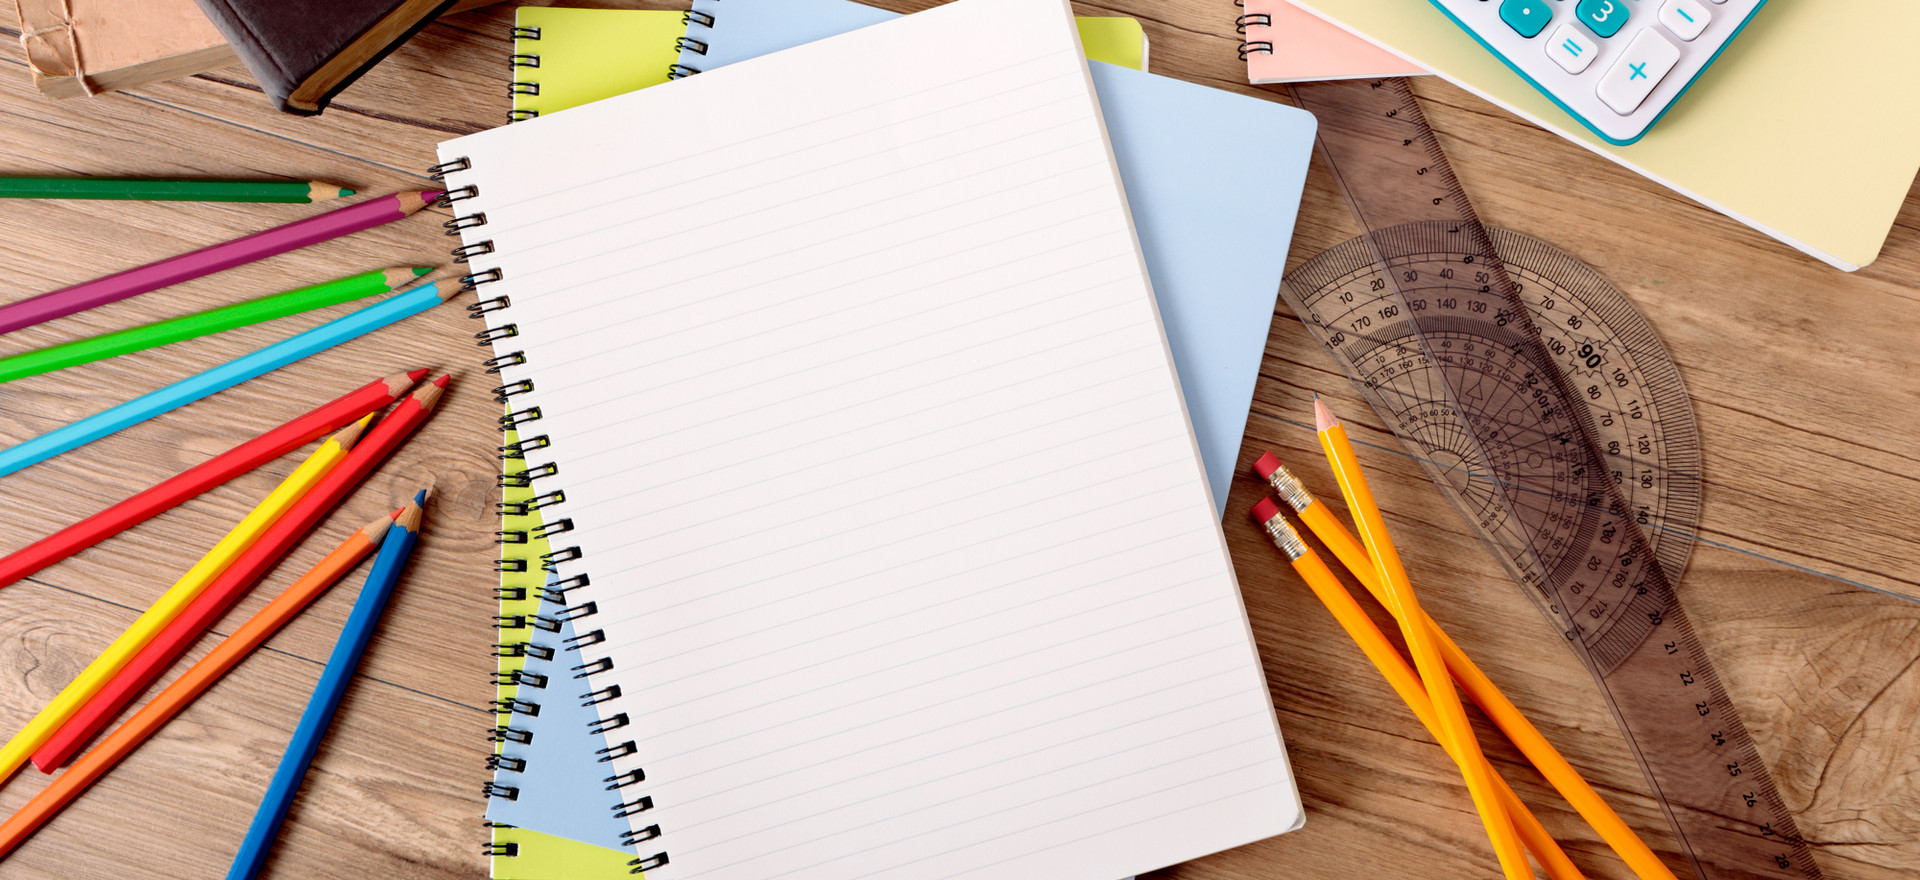 Essential school supplies for distance learning